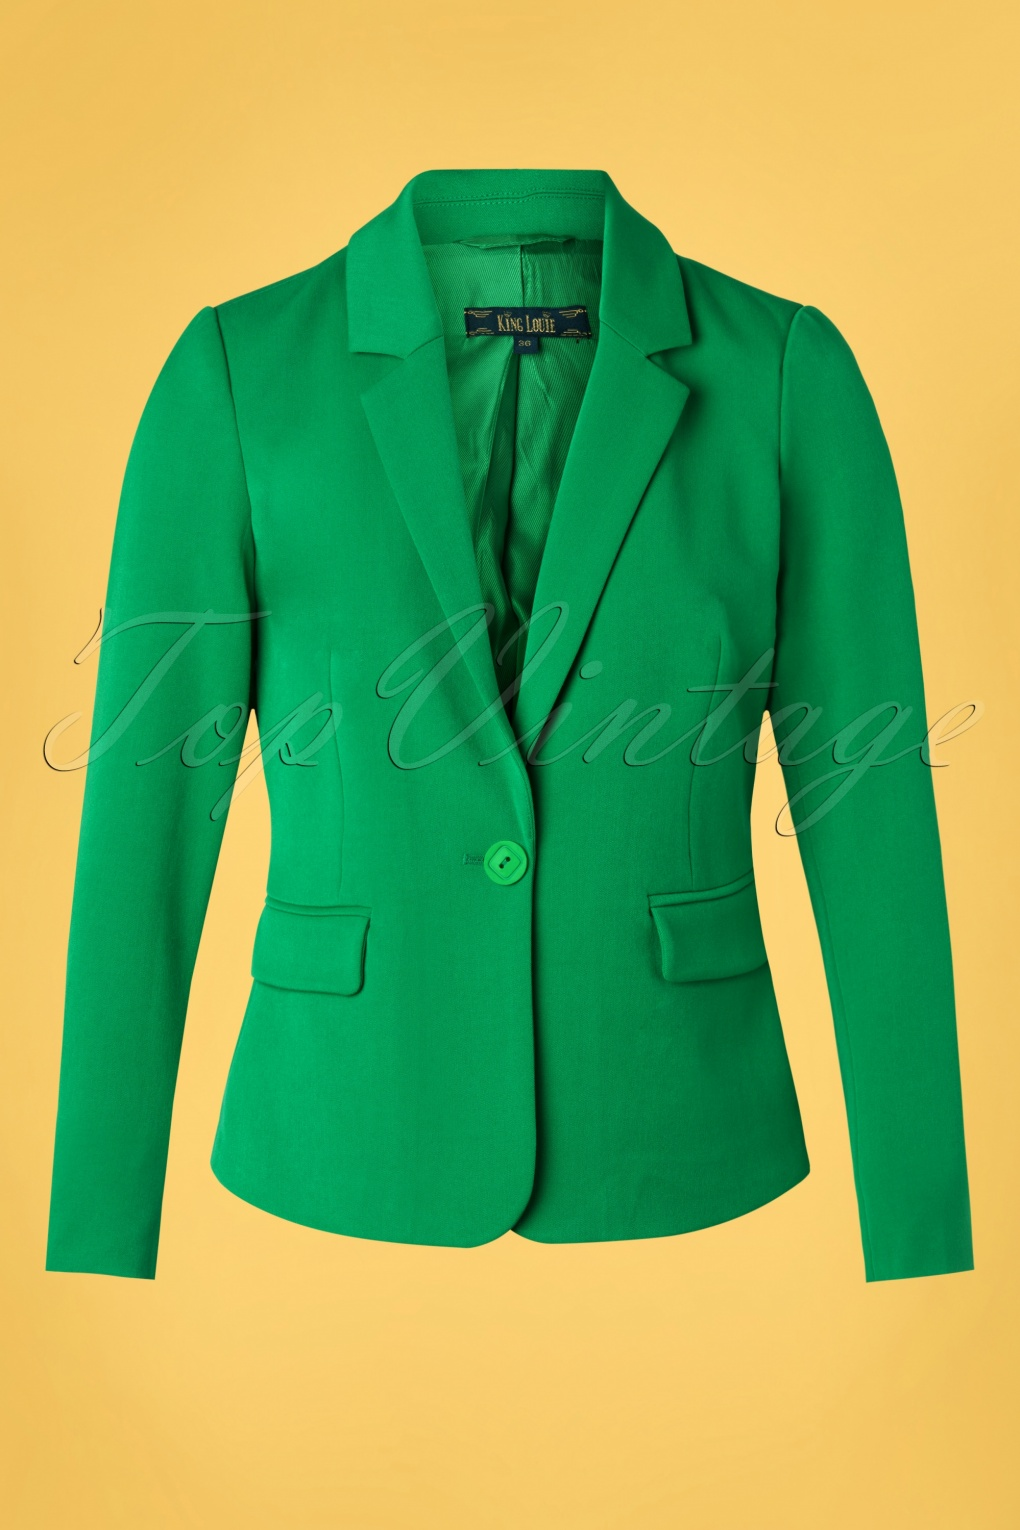 1960s Coats and Jackets 60s Daisy Broadway Blazer in Very Green £101.62 AT vintagedancer.com